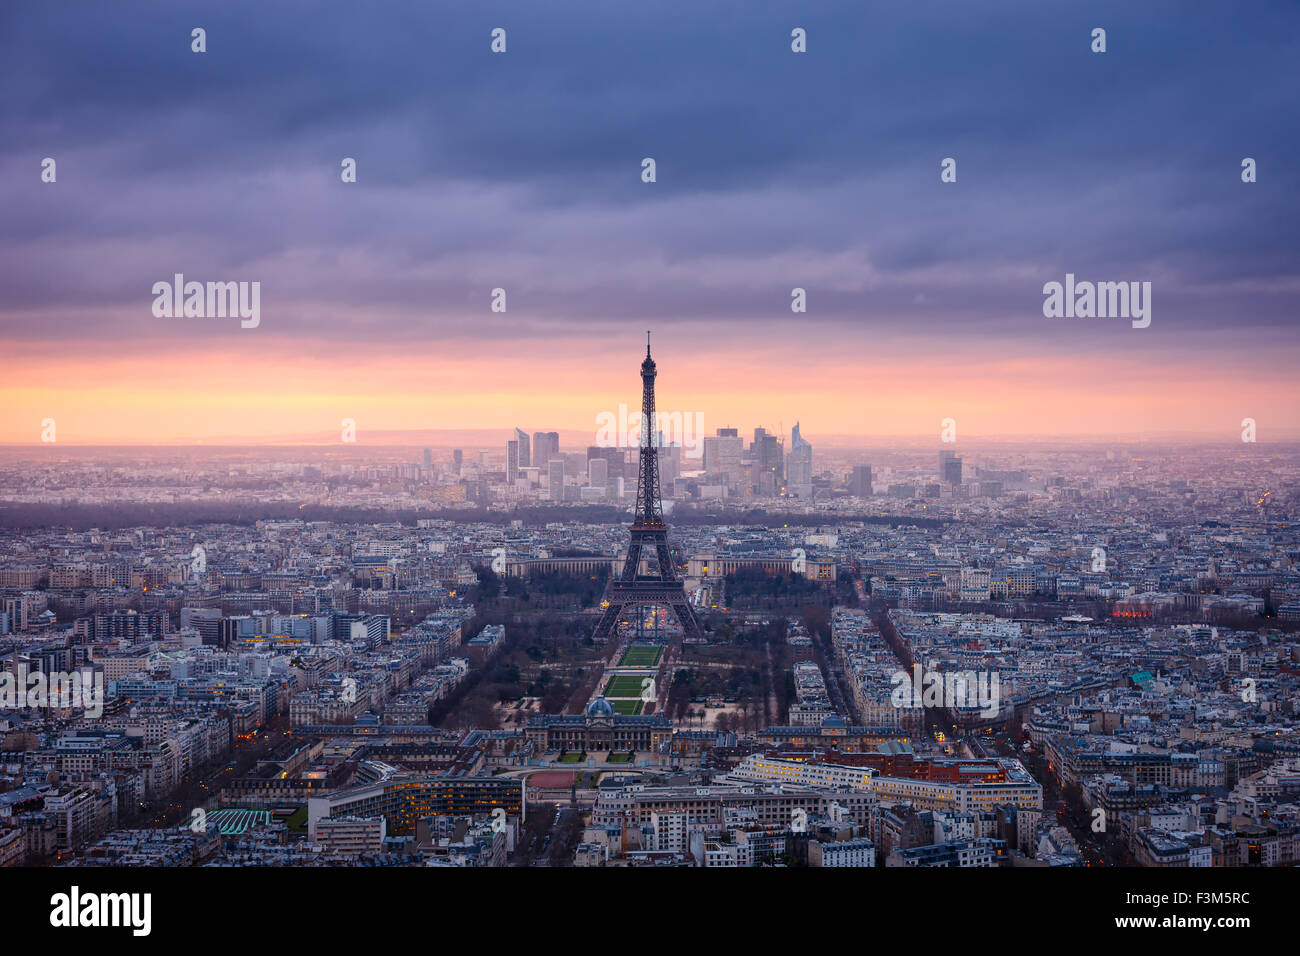 Paris cityscape clad in pink at dusk. Aerial view of Paris and the Eiffel Tower, Champ de Mars, Trocadero and La - Stock Image